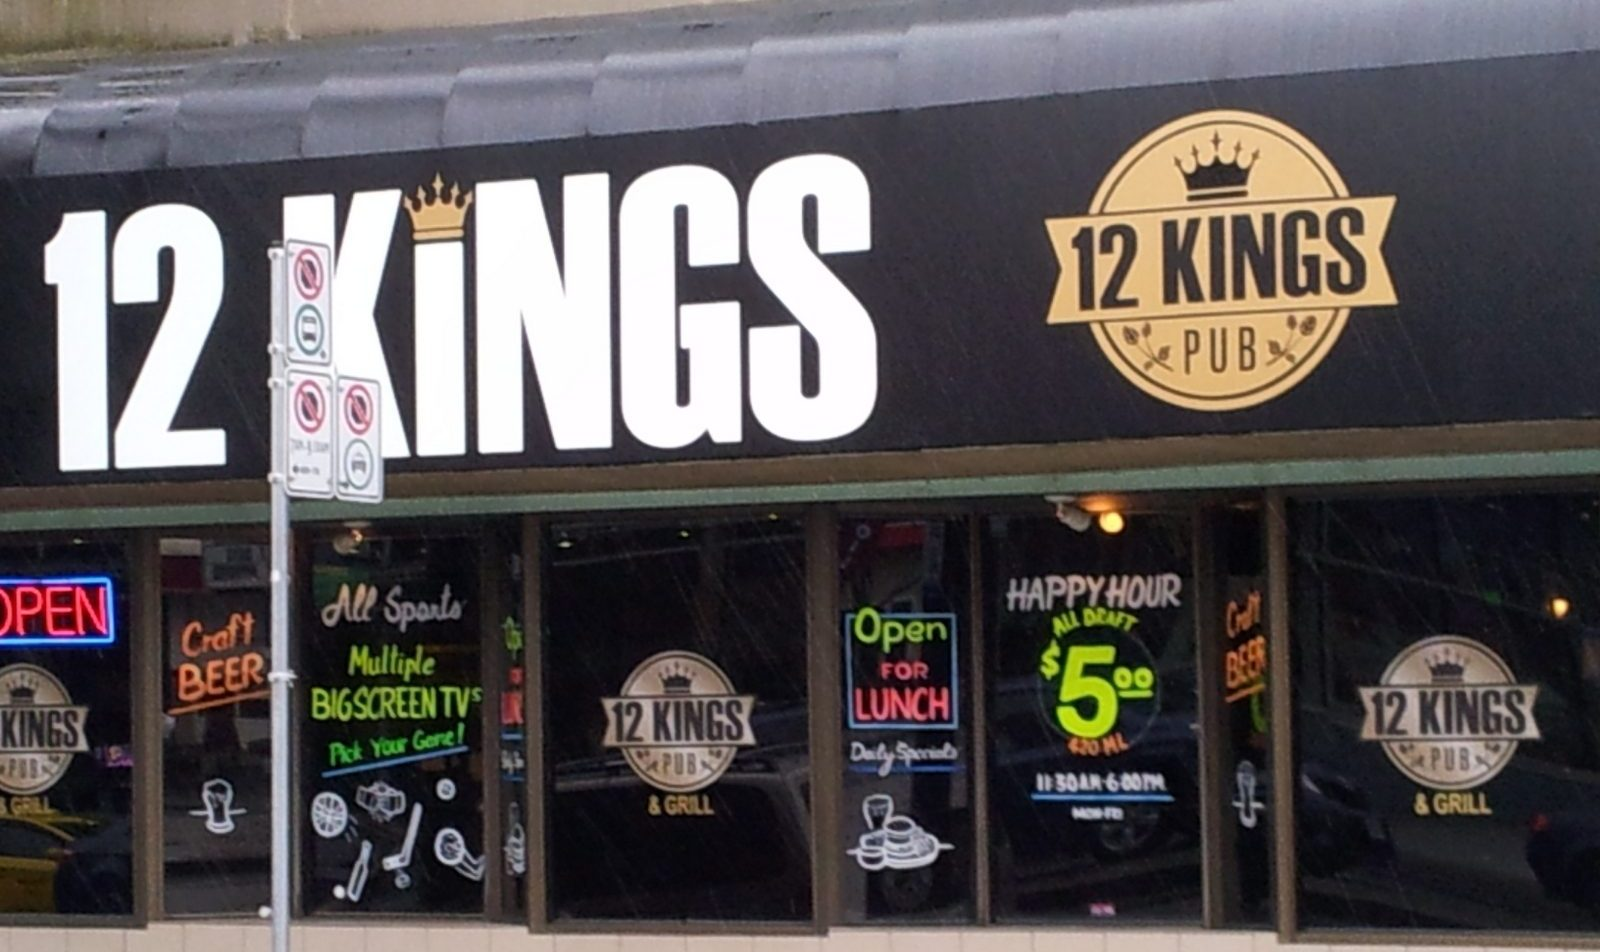 Beer League Part II: Interview With Armin Sodhi Of 12 Kings Pub